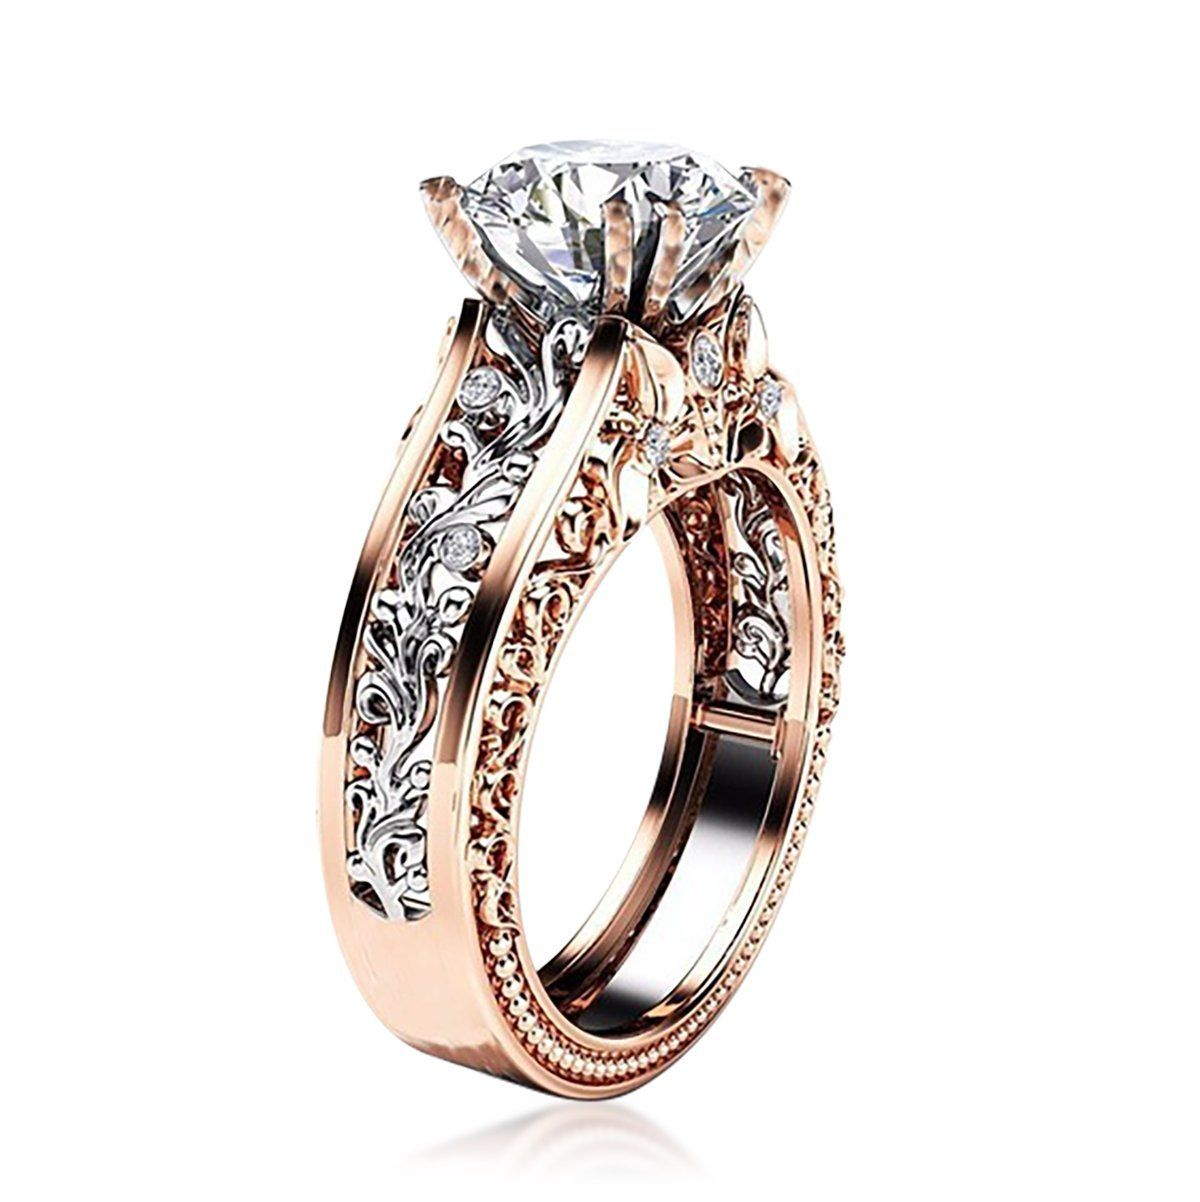 14k Rose Gold Plated Flower Pattern Bridal Decorated Ring Watches Blingjewelry Wholesale Crystalrings Studs Wholesalewatches Buyjewelleryonline: Flower Pattern Wedding Ring At Reisefeber.org